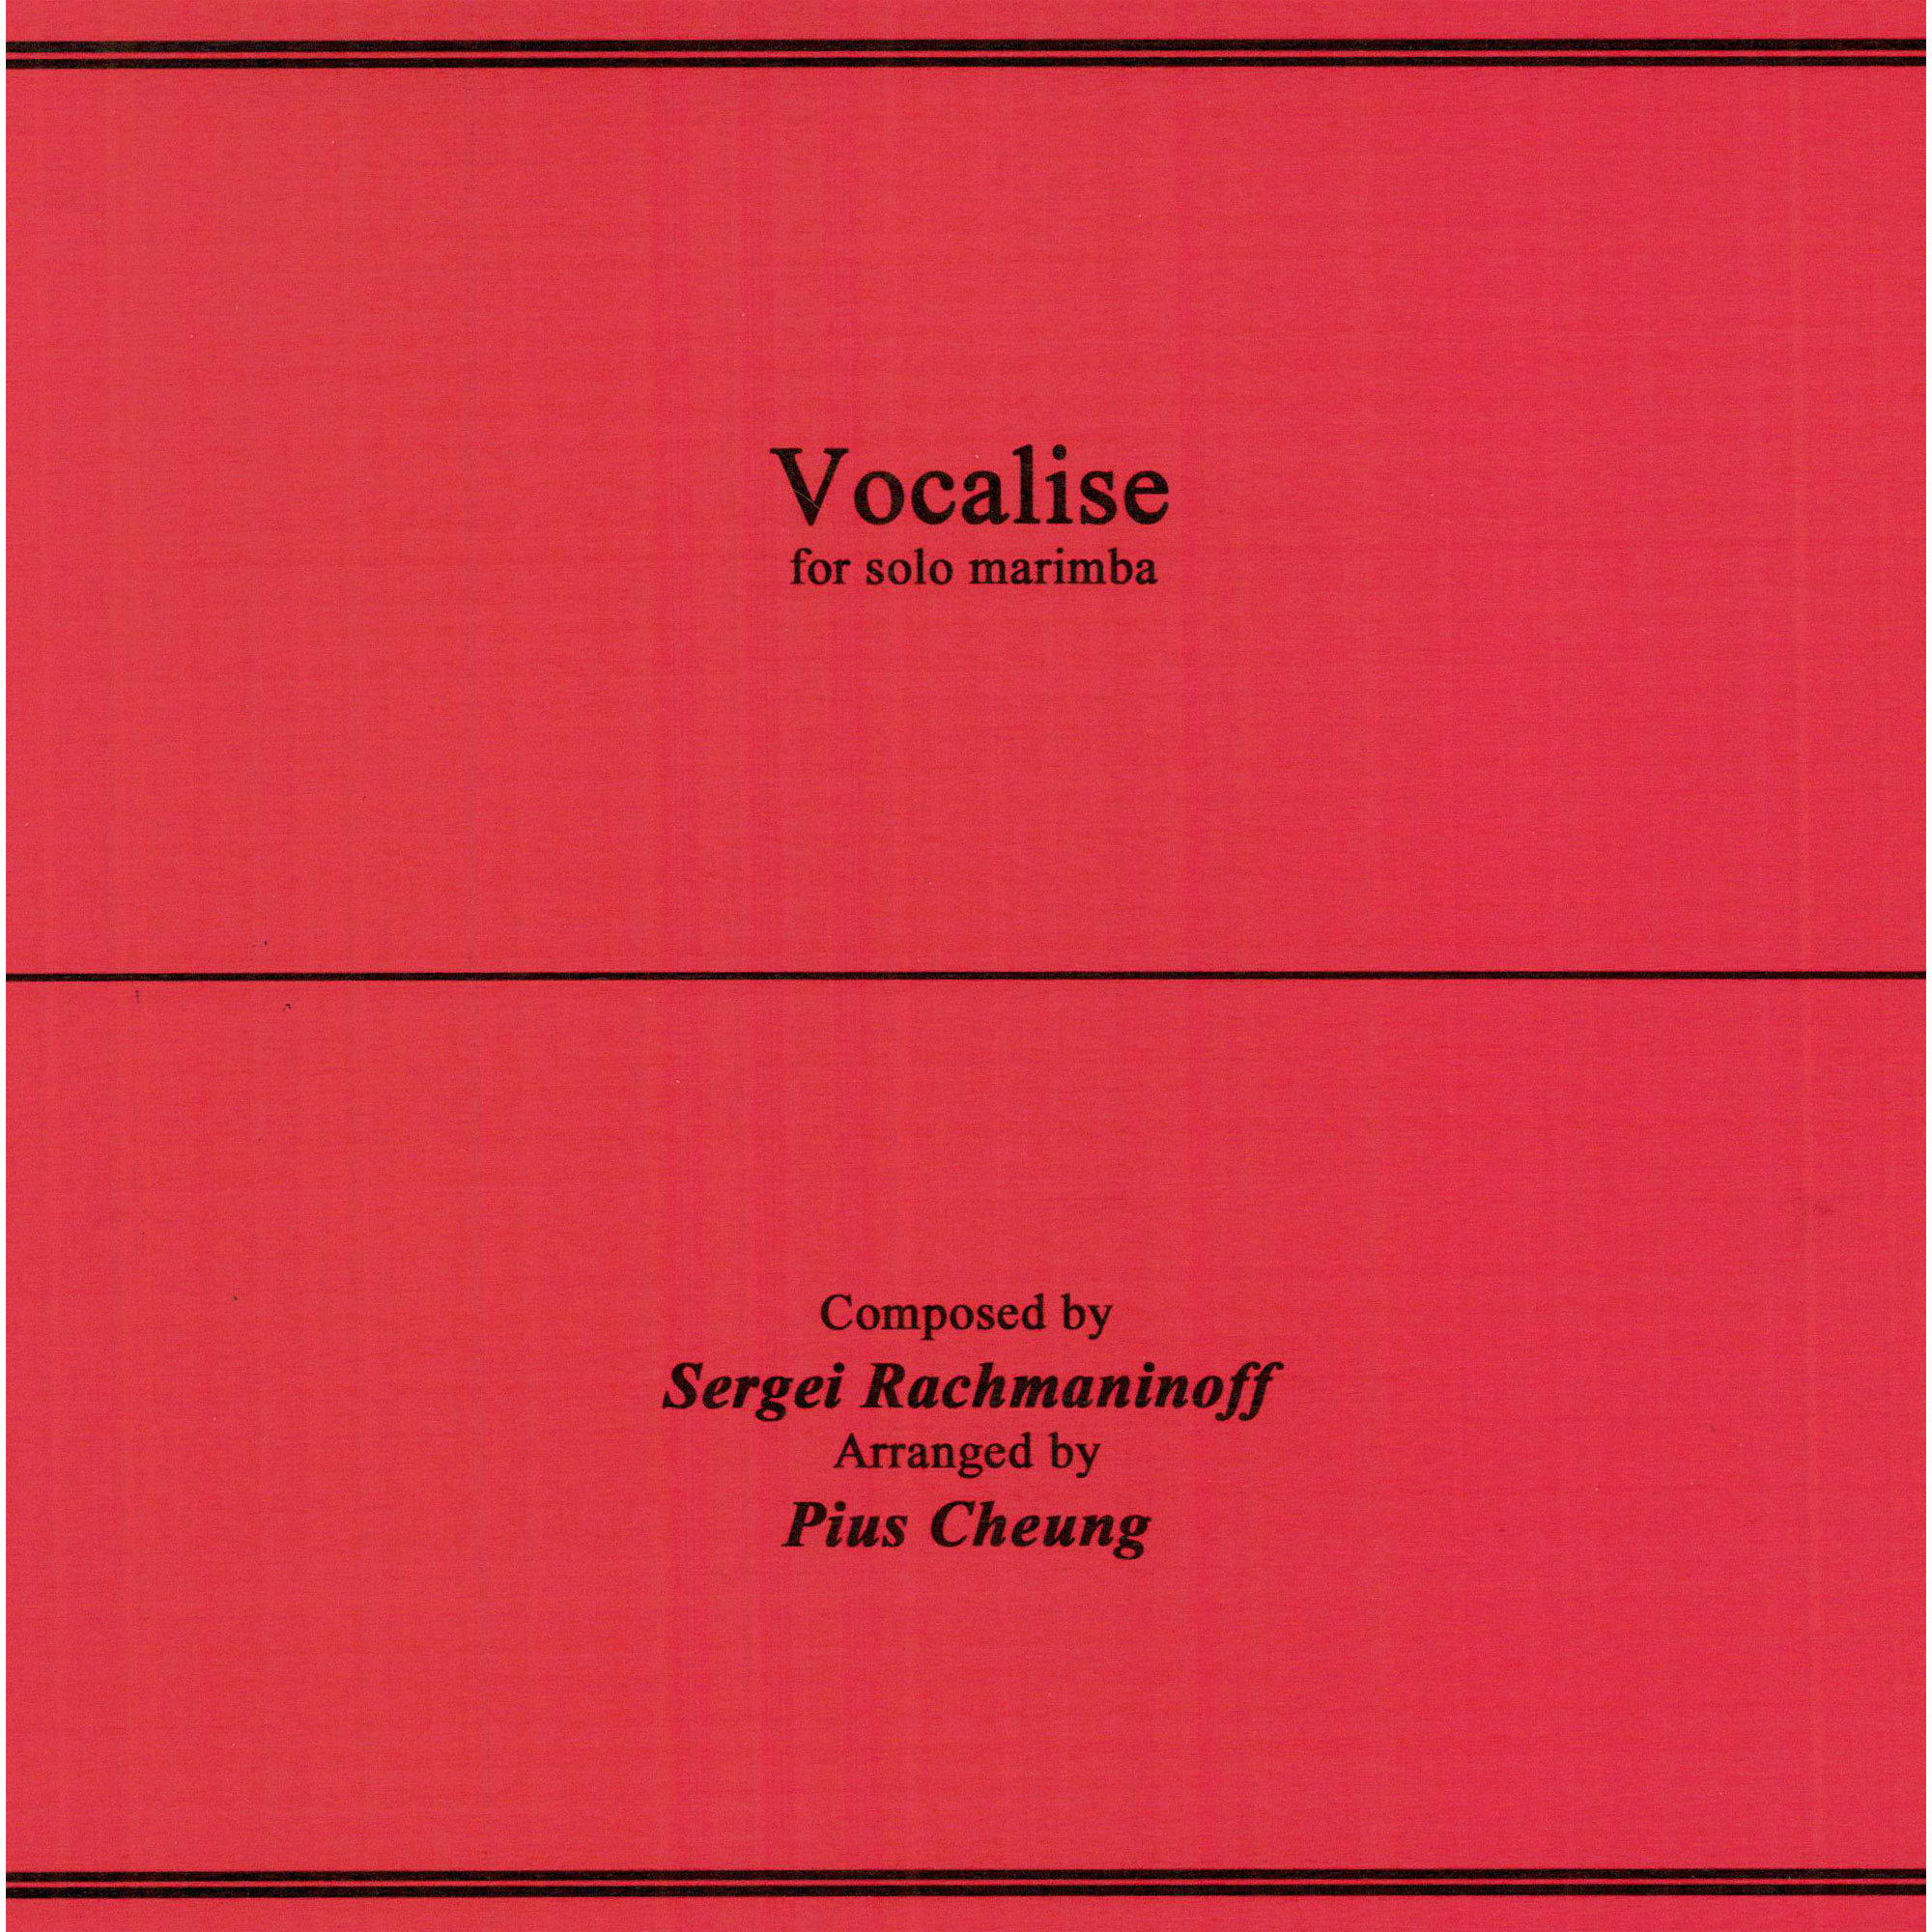 Vocalise by Sergei Rachmaninoff arr. Pius Cheung